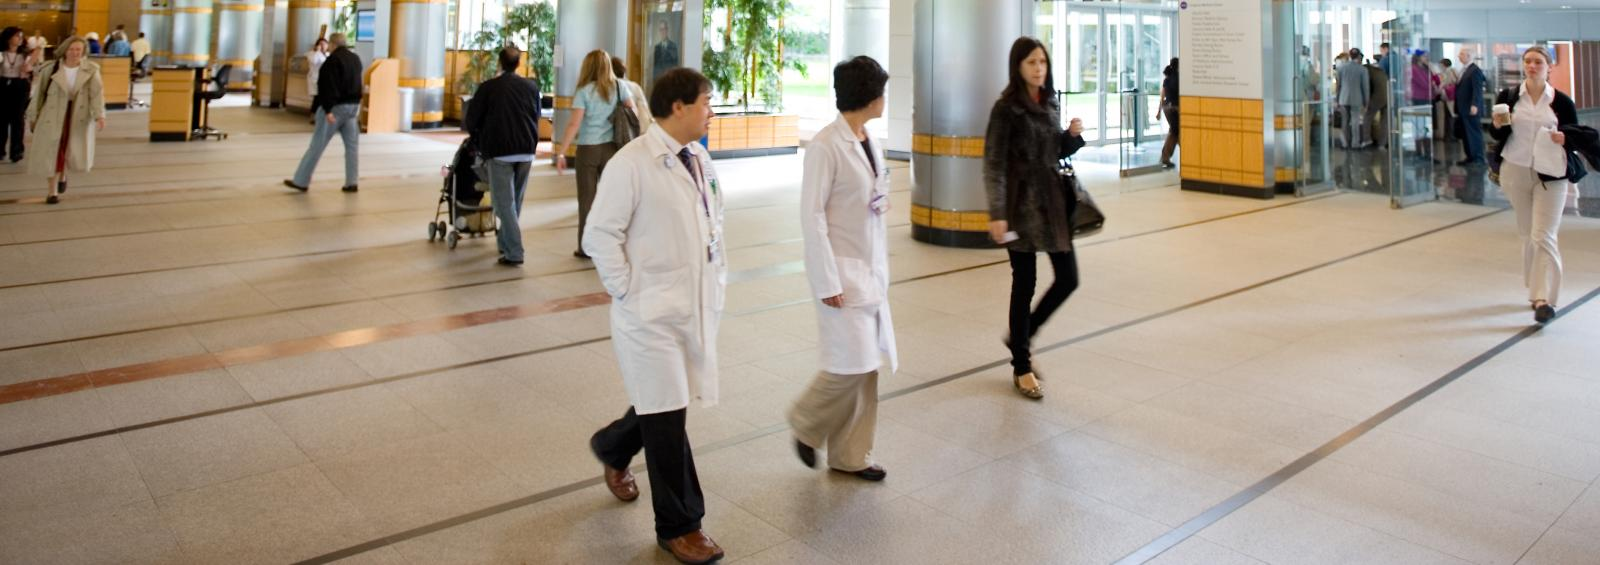 People Walk Through Tisch Hospital Lobby